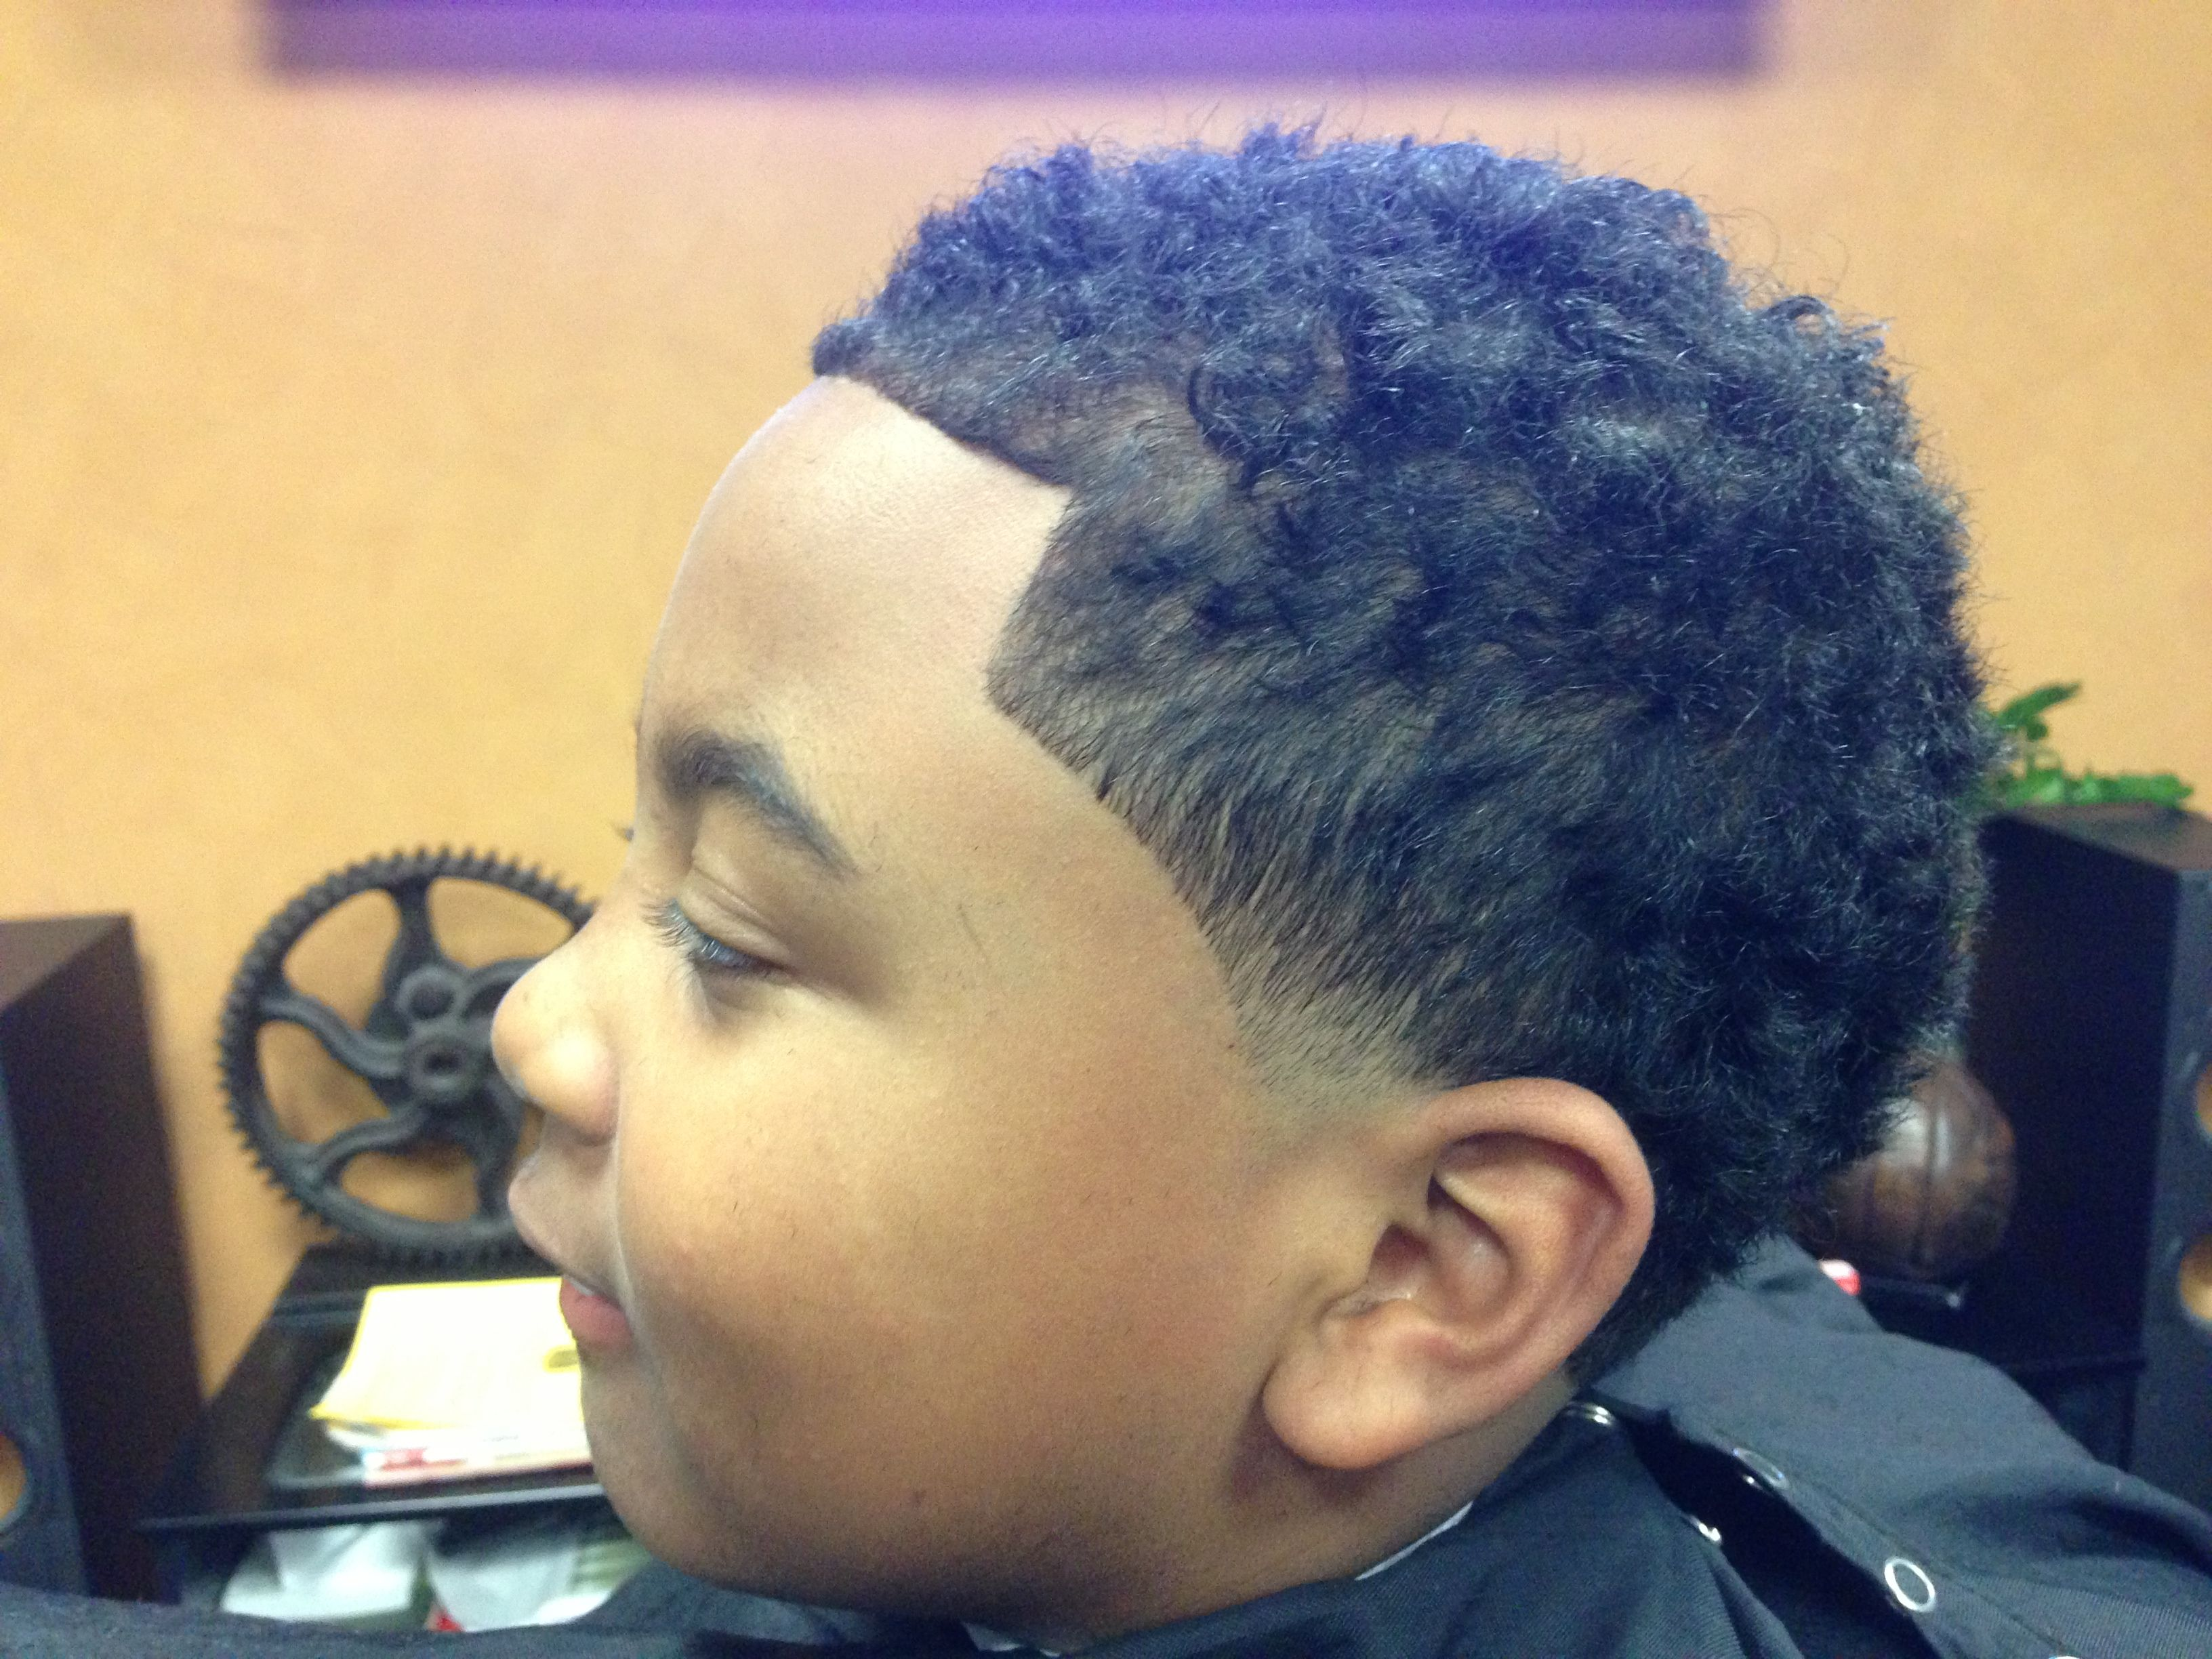 Haircuts For Biracial Boys Hair  newhairstylesformen2014.com